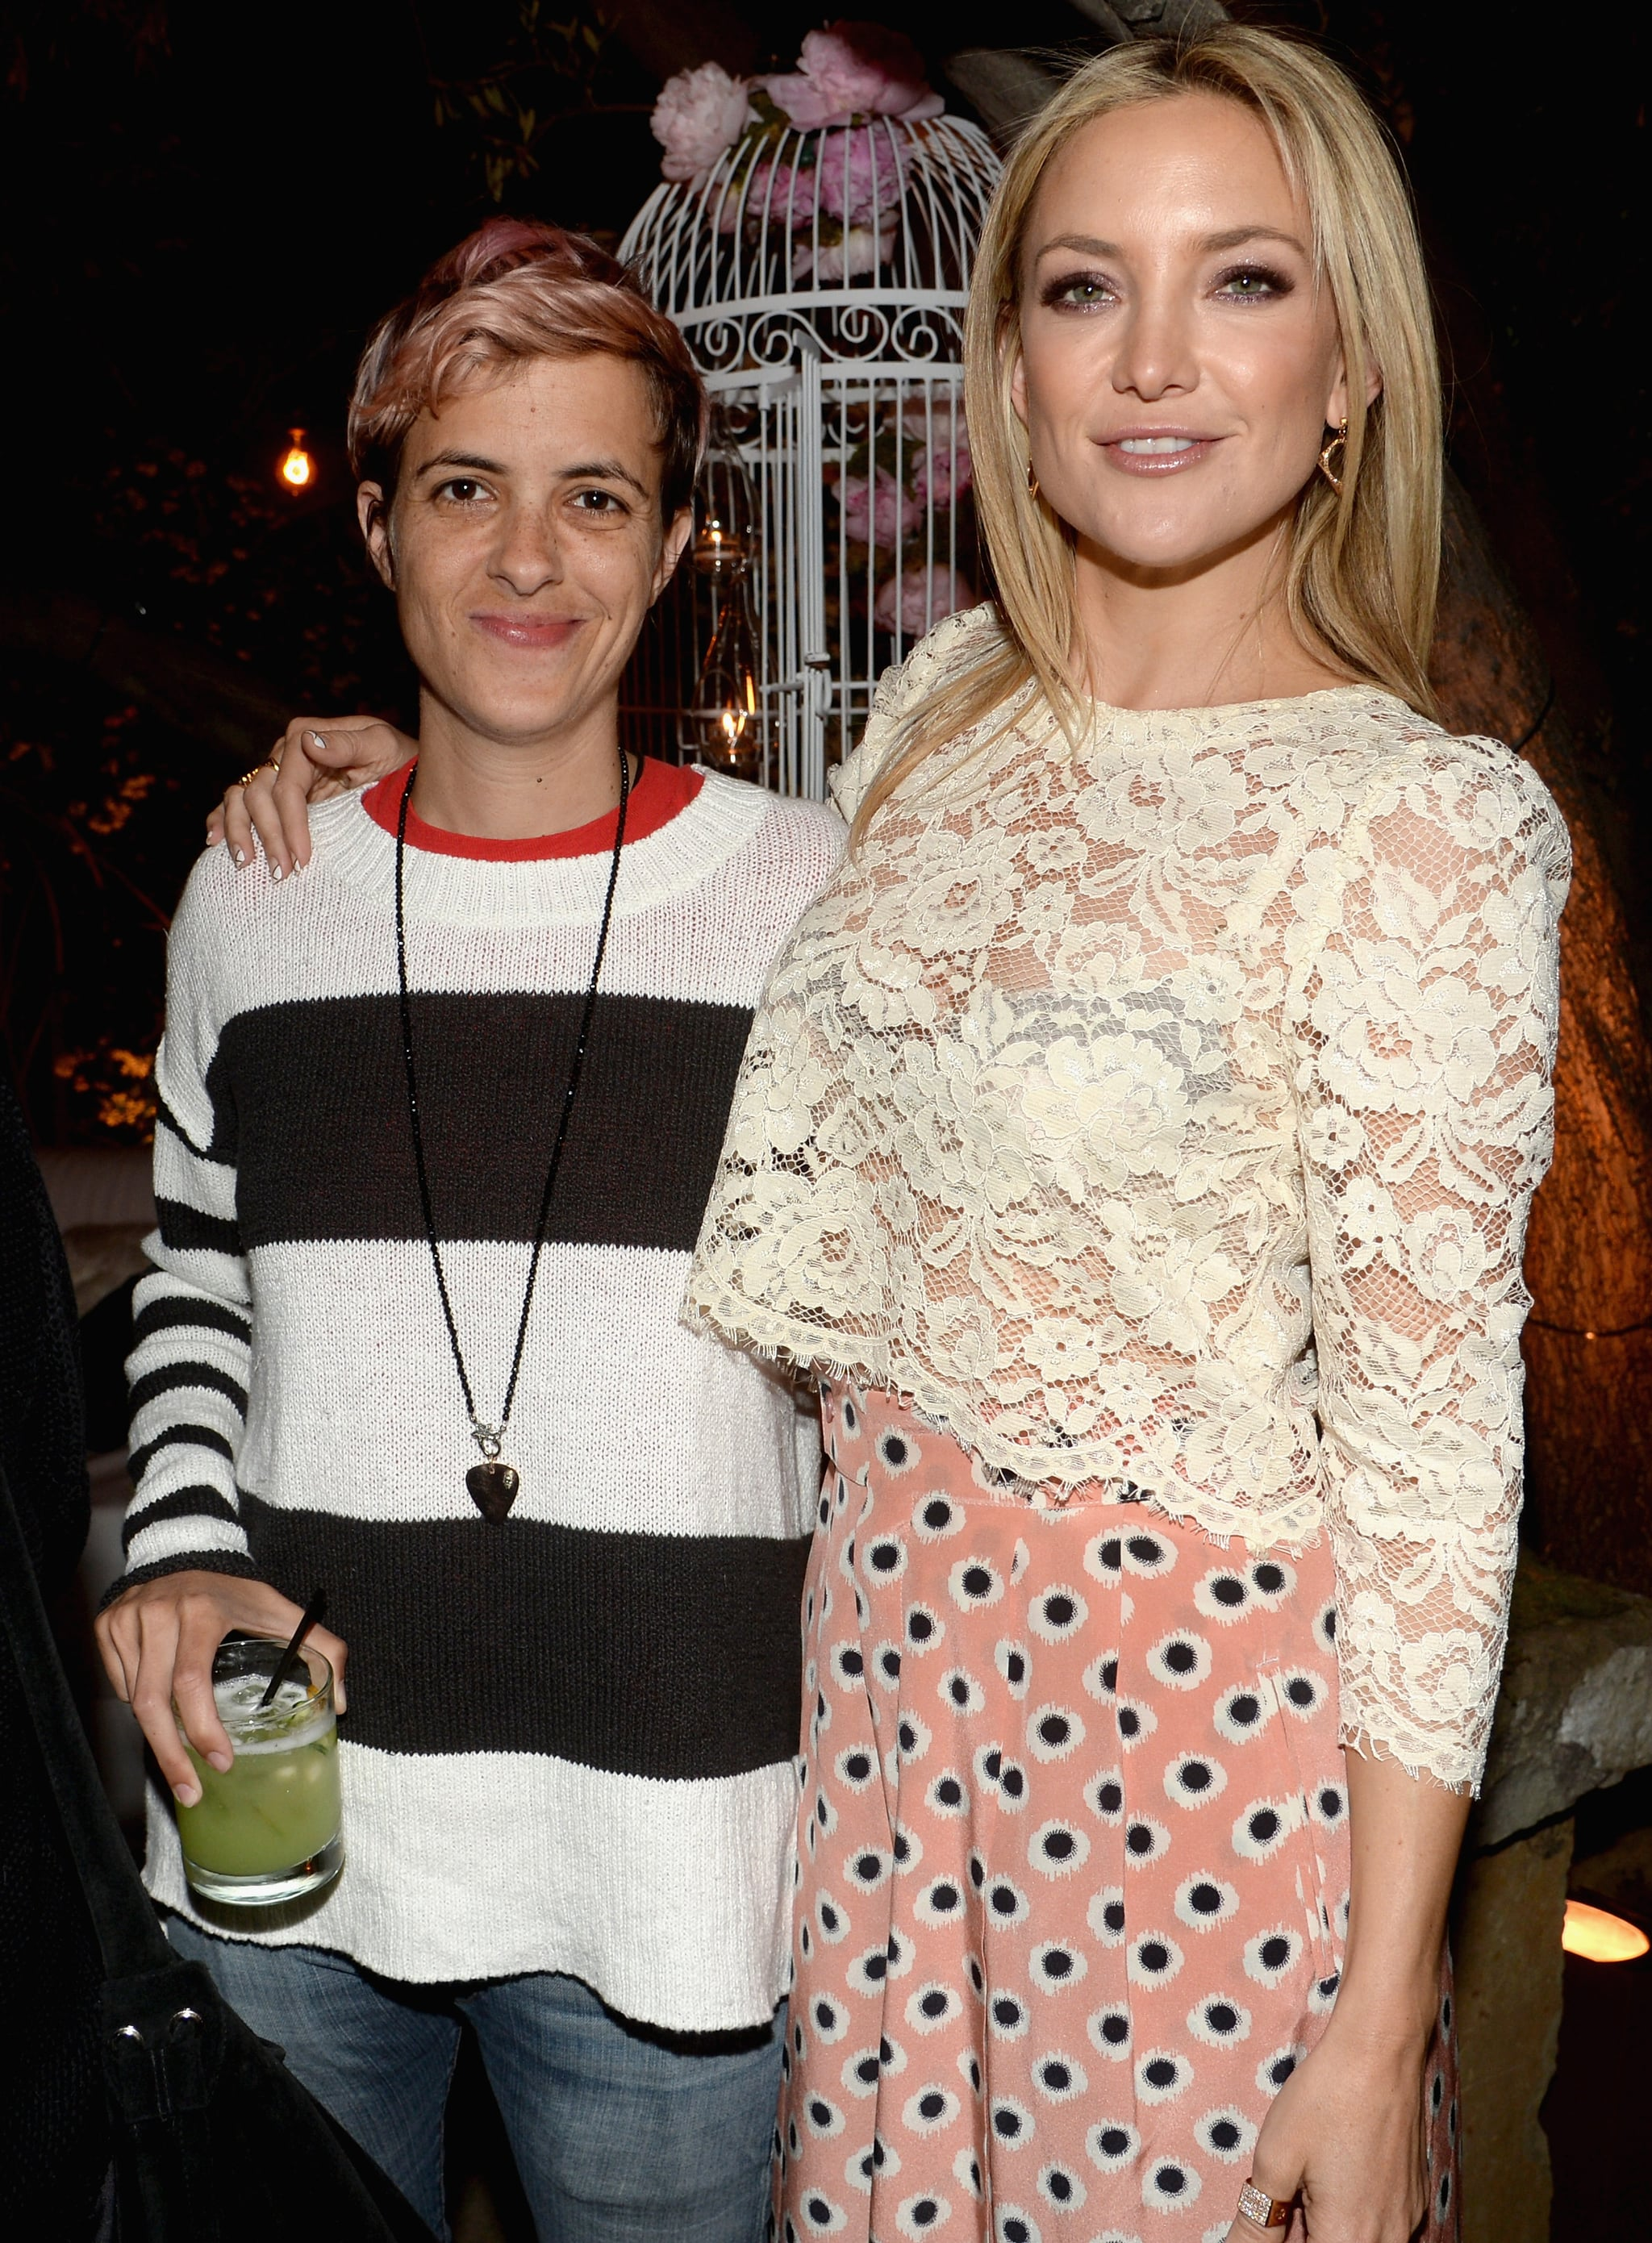 Kate hung out with Samantha Ronson.